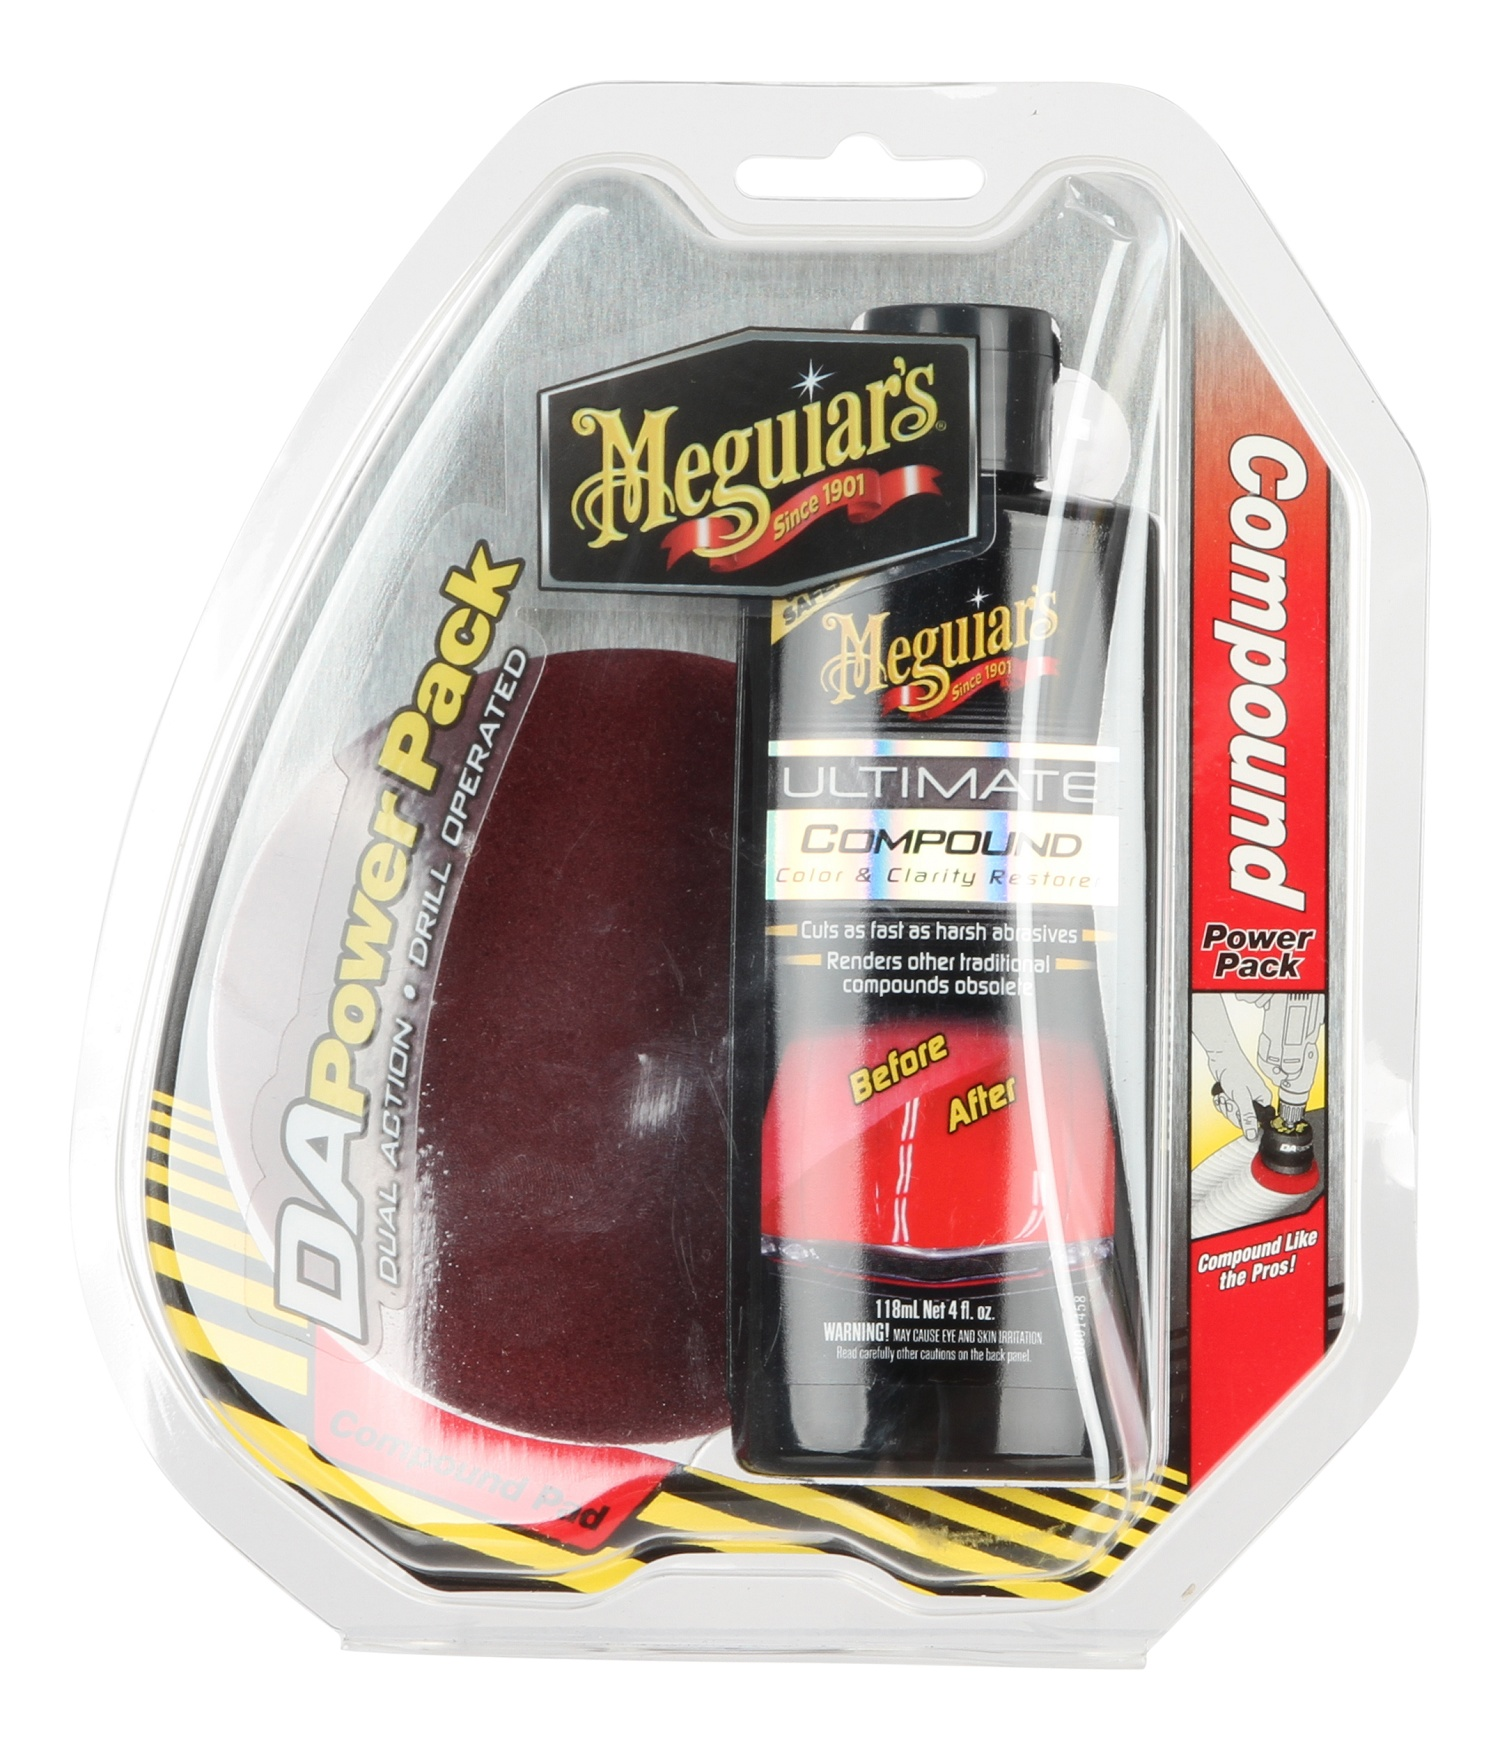 meguiars dual action ultimate compound power pack g3501int. Black Bedroom Furniture Sets. Home Design Ideas